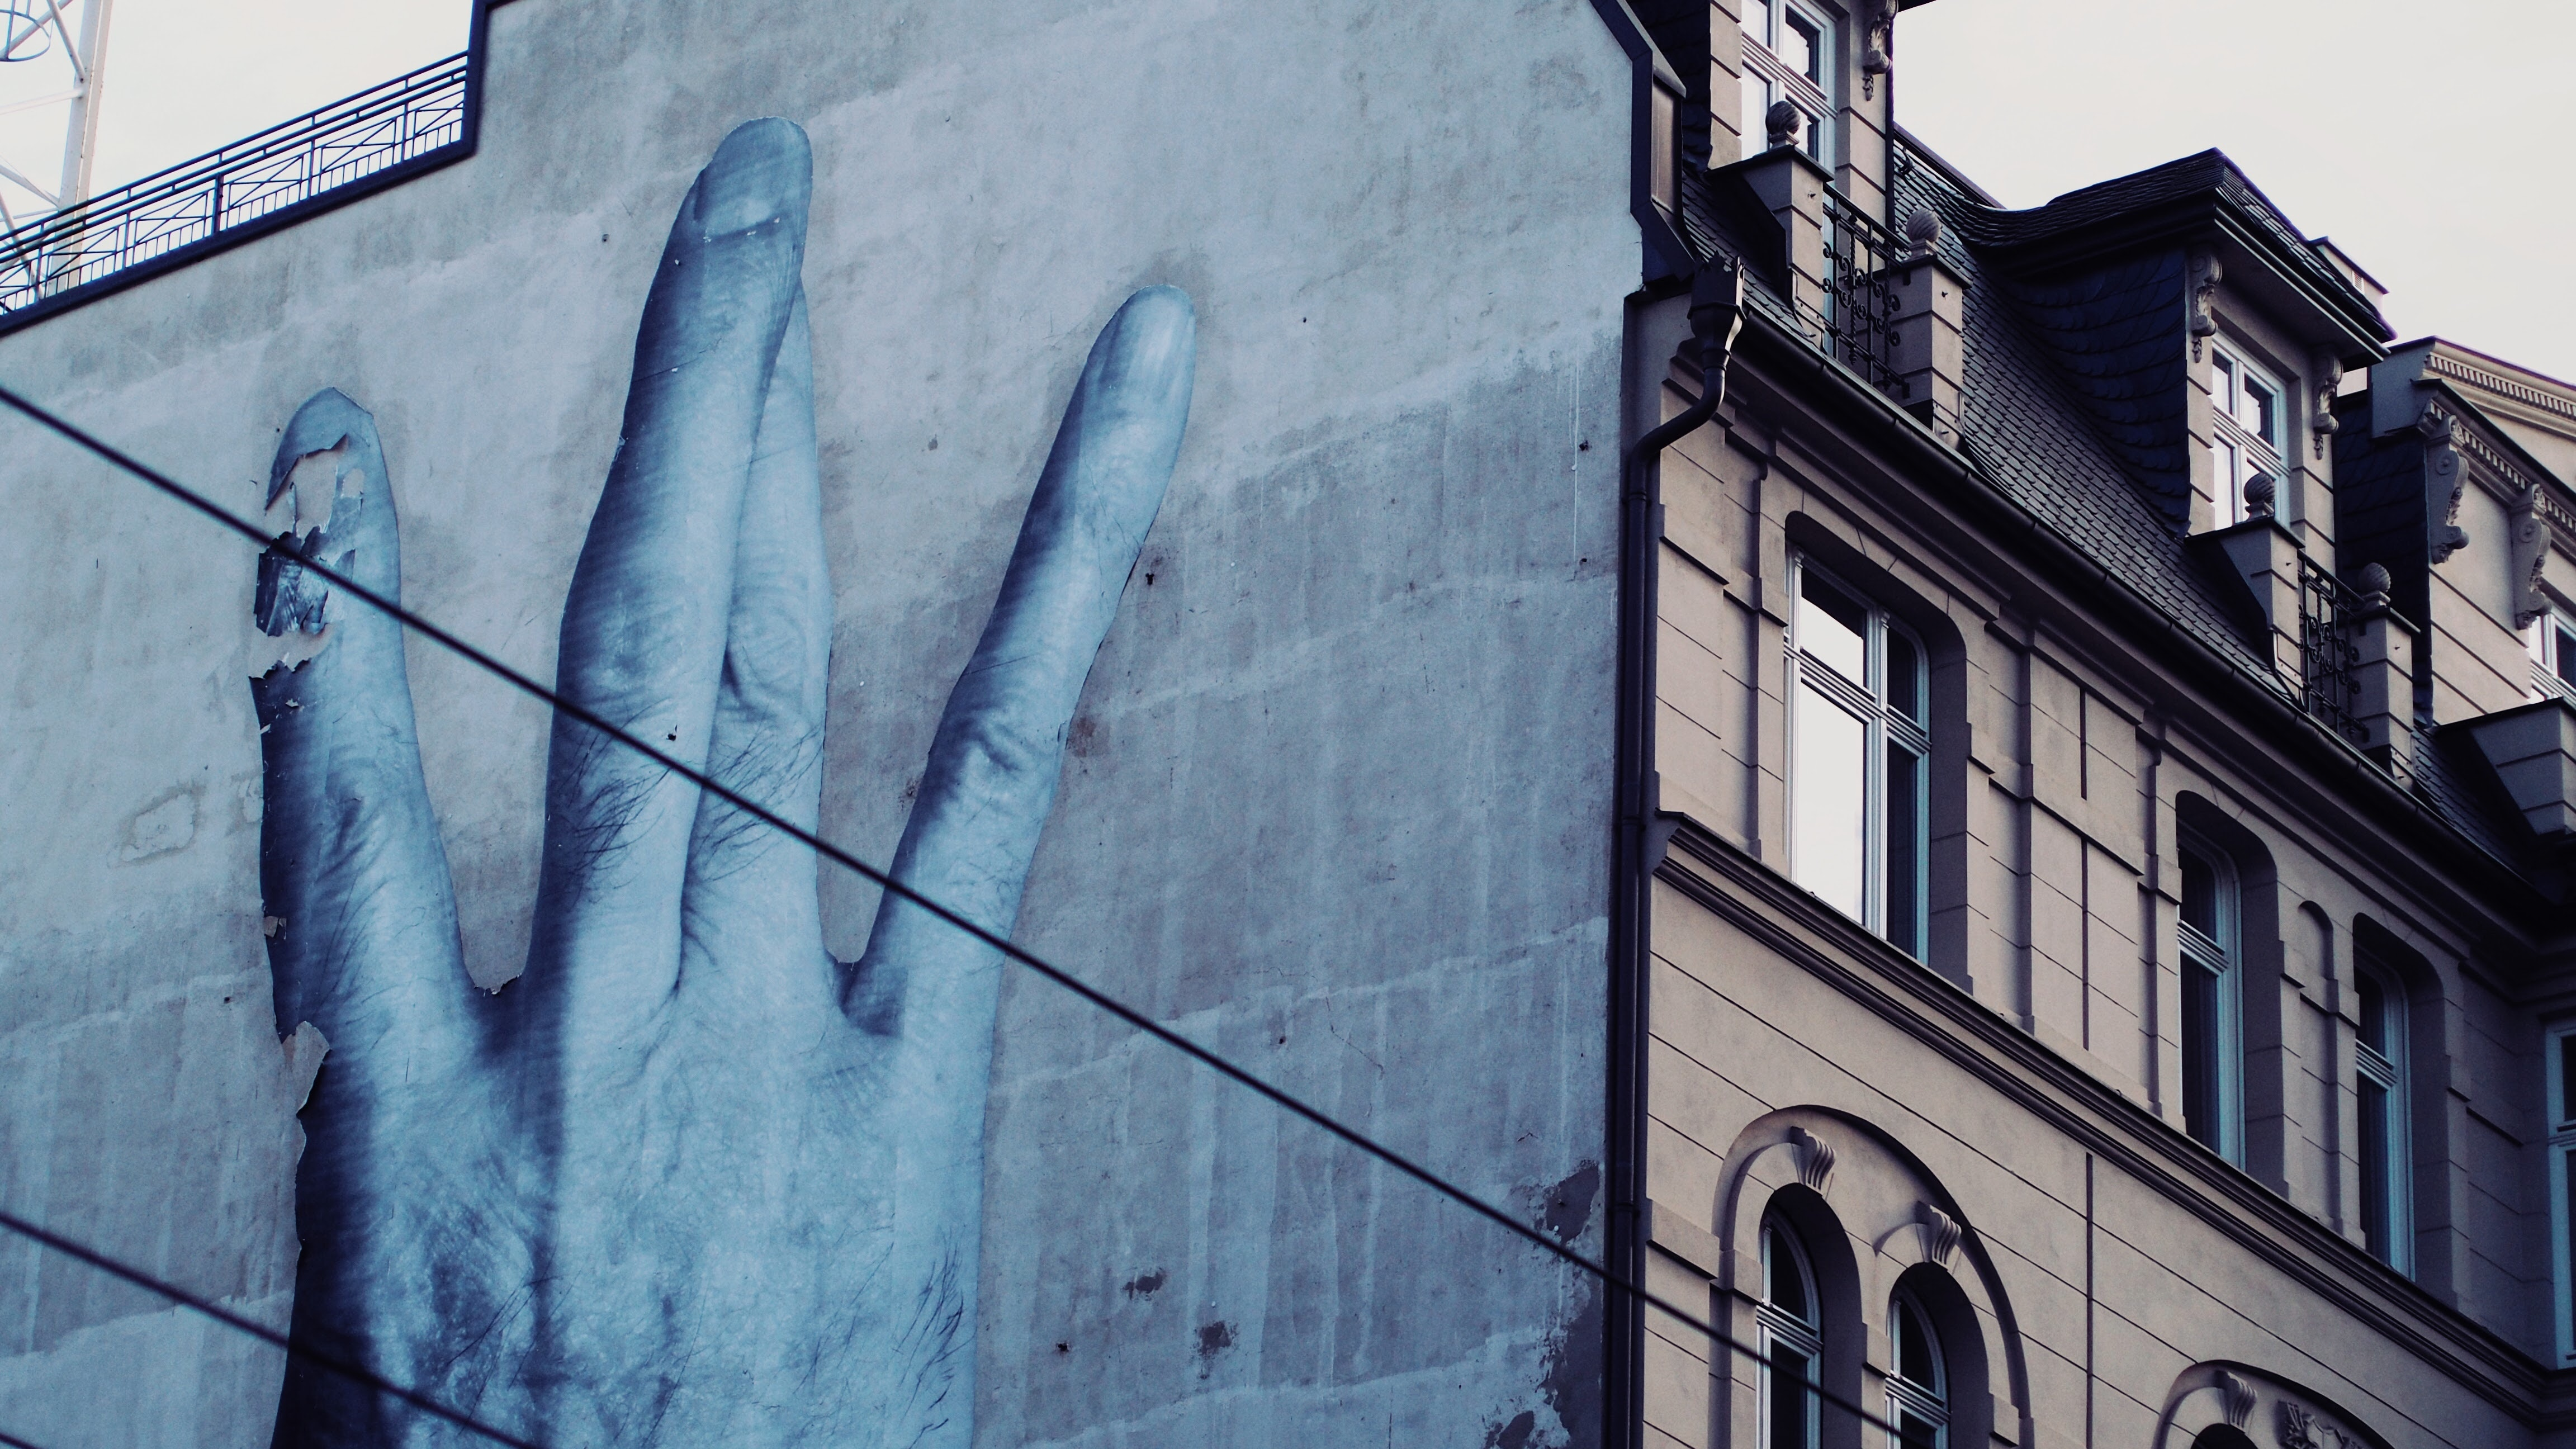 Hand painted on building photo